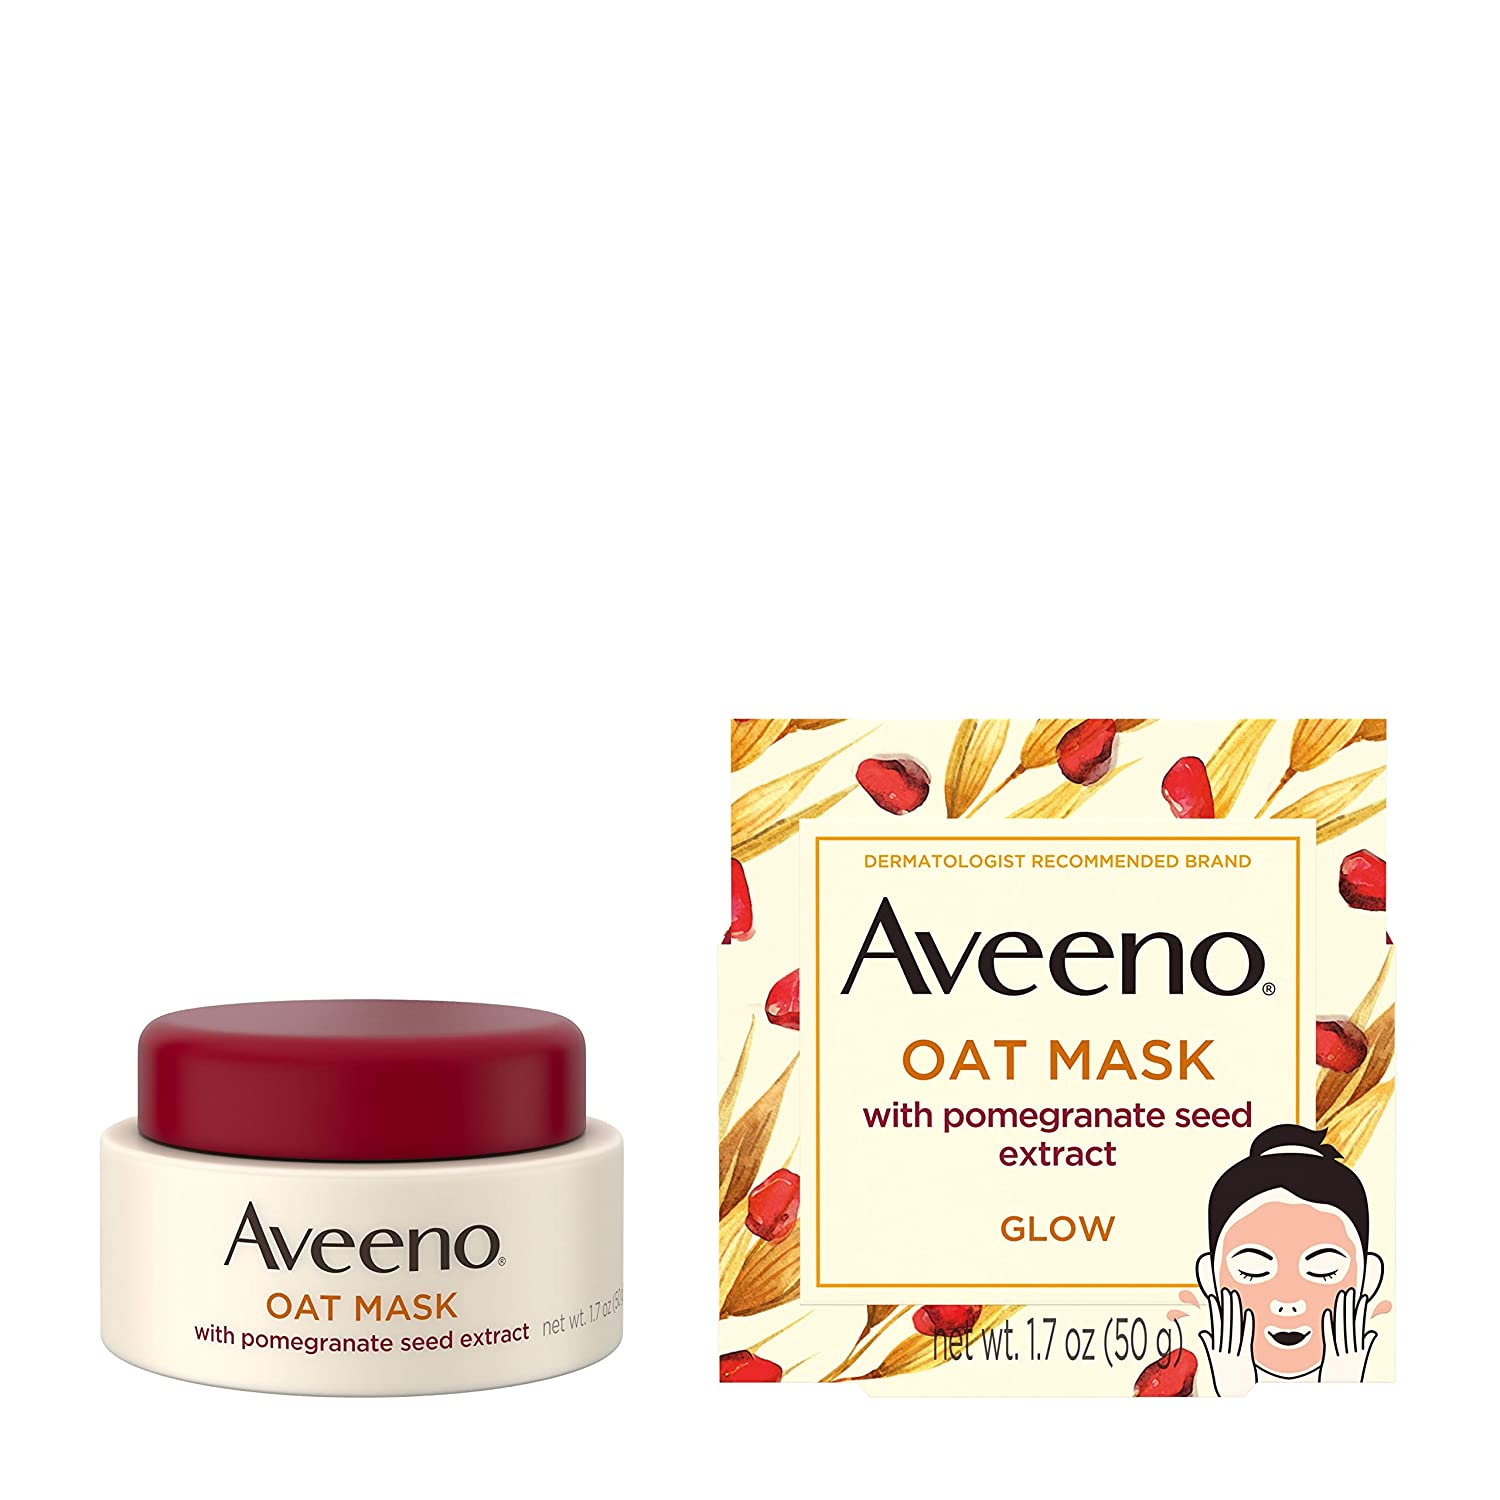 Amazon Com Aveeno Oat Face Mask With Pomegranate Seed Extract Kiwi Water And Prebiotic Oat Hydrating Full Face Mask For Glowing Skin Paraben Free Phthalate Free 1 7 Oz Health Personal Care